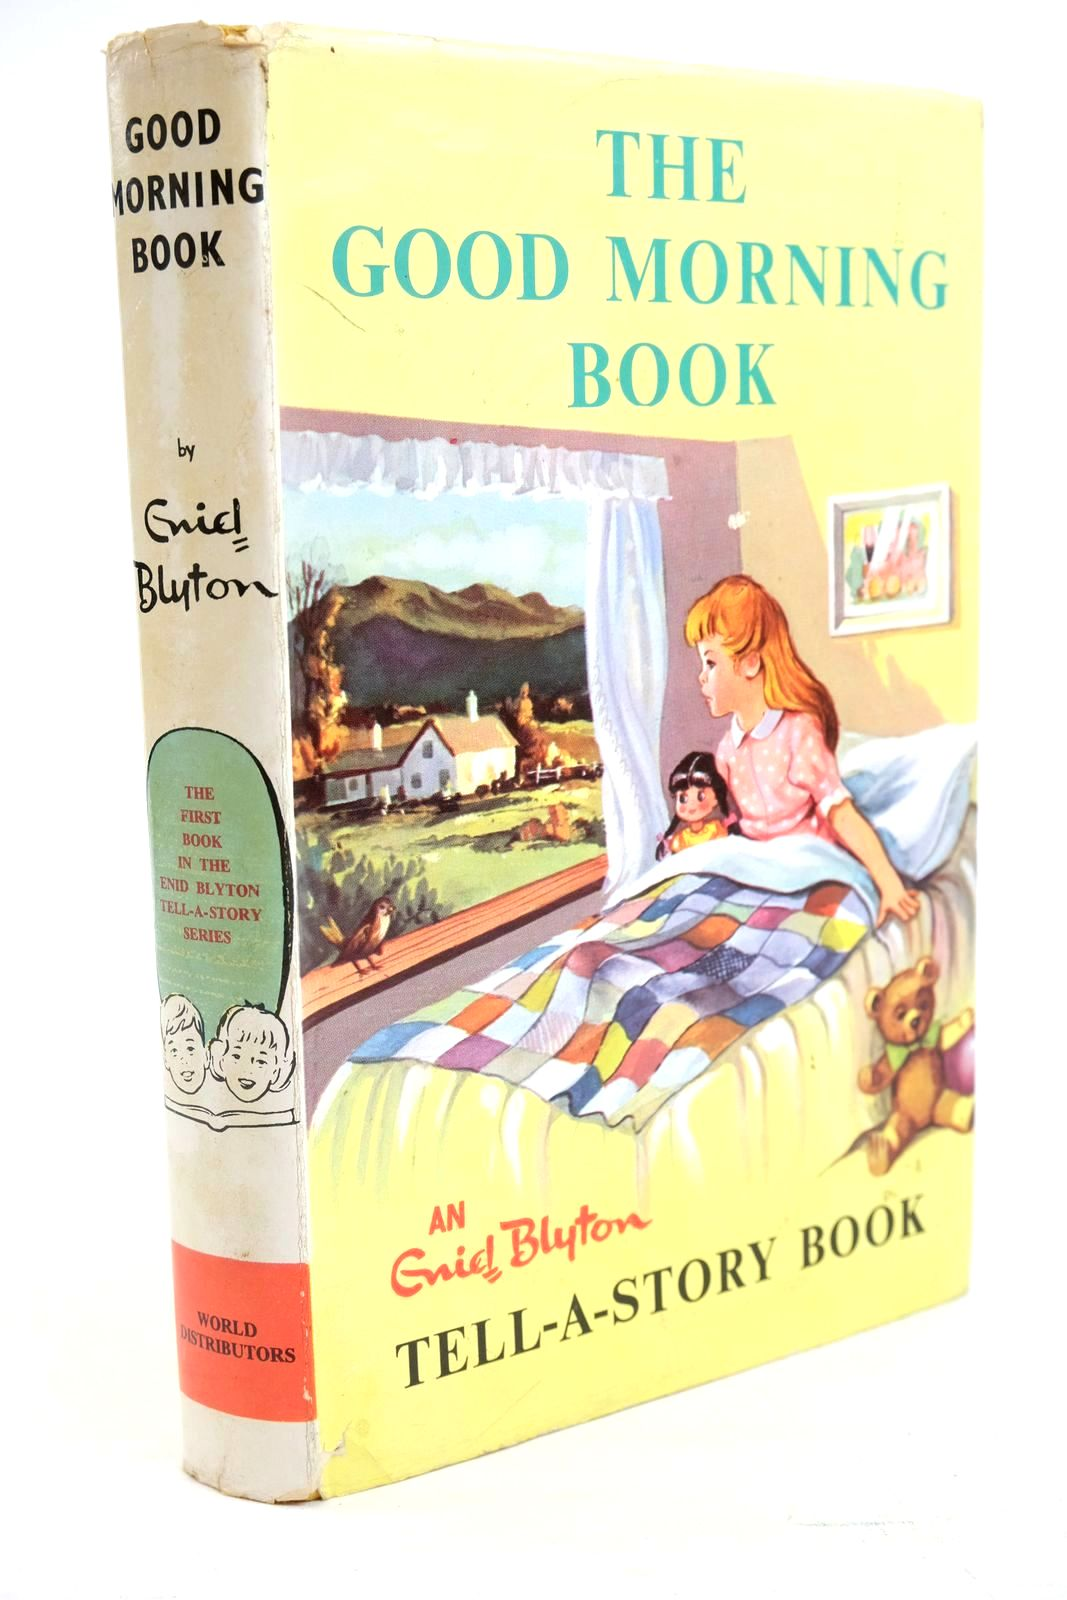 Photo of ENID BLYTON'S GOOD MORNING BOOK written by Blyton, Enid illustrated by Johnson, Joyce published by World Distributors Ltd. (STOCK CODE: 1321076)  for sale by Stella & Rose's Books